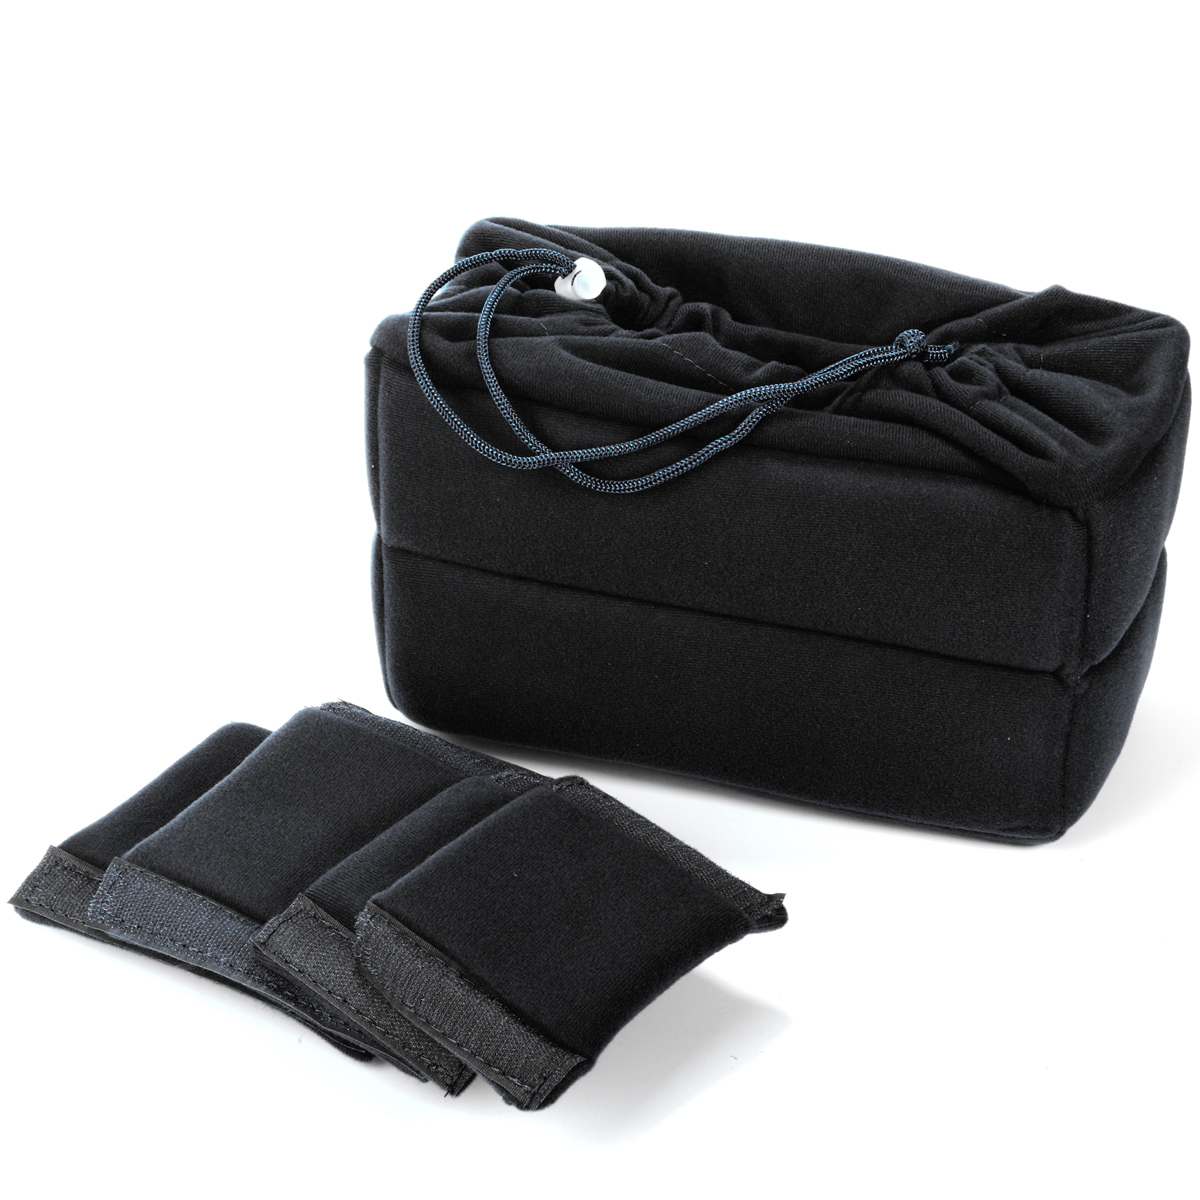 Padded Pouch for Nikon DSLR